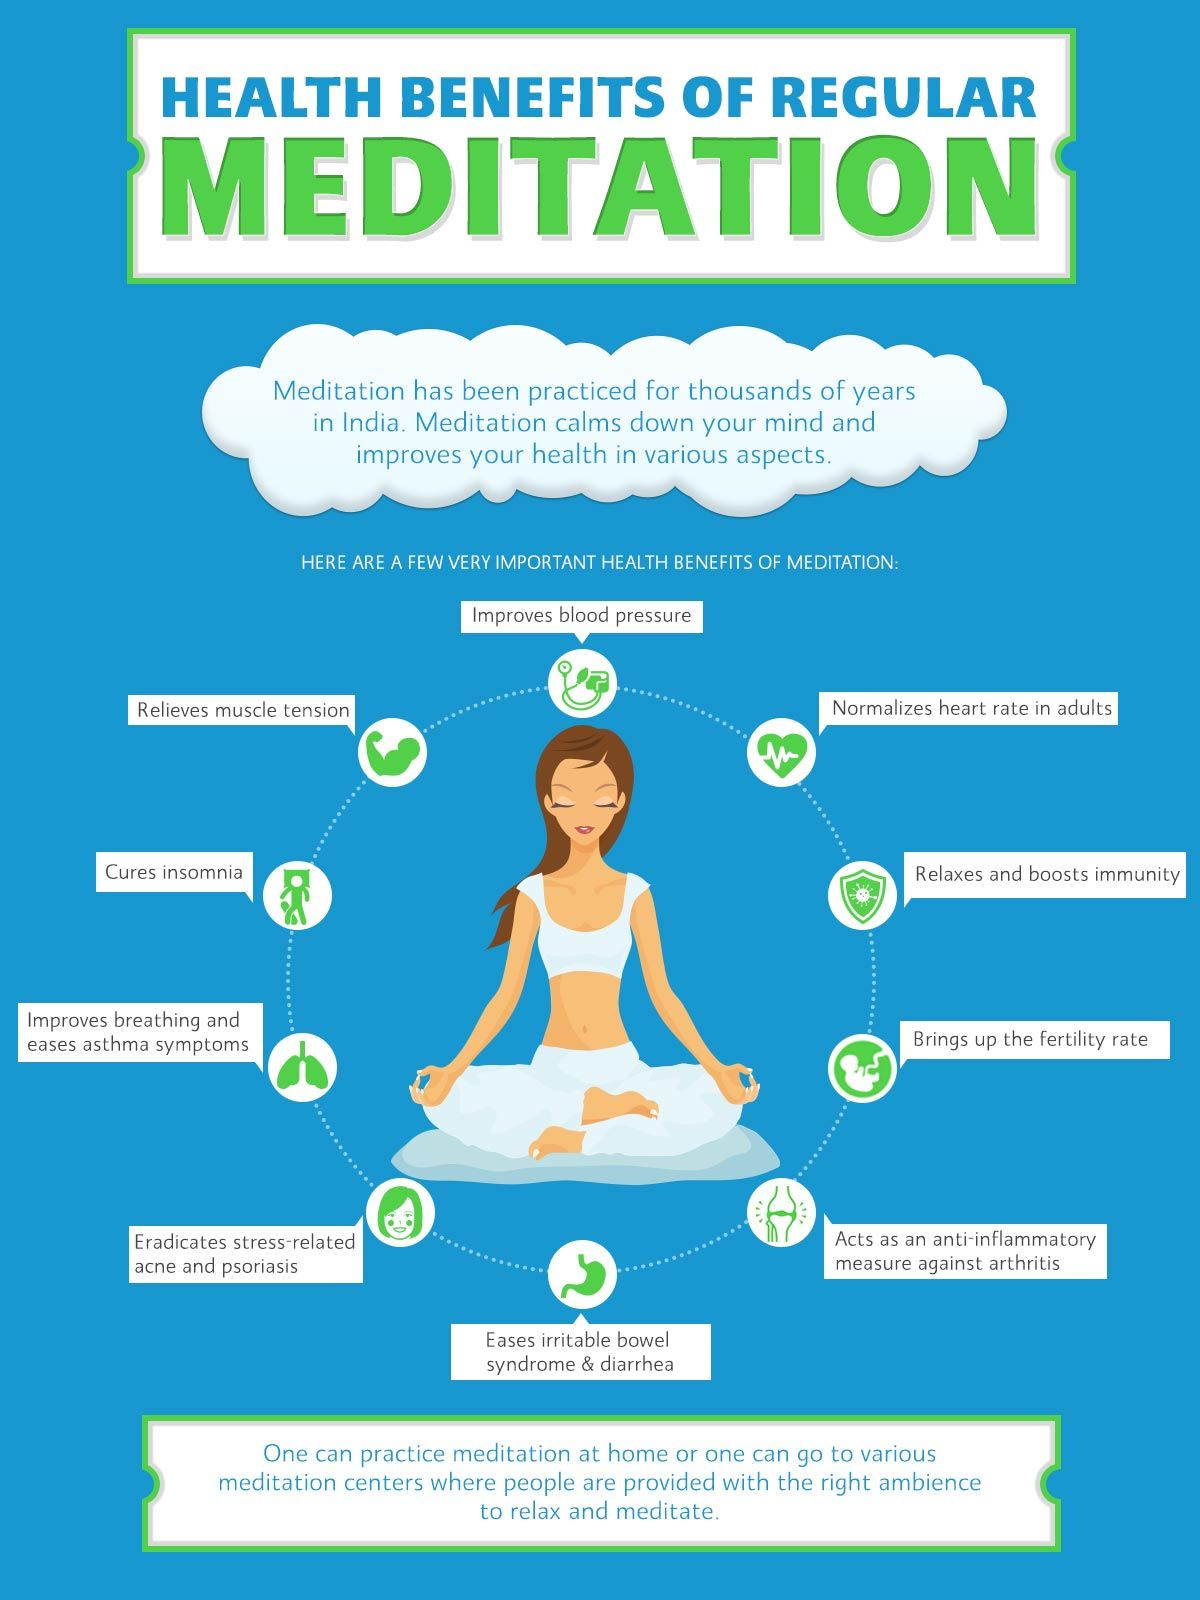 Check Out The Different Health Benefits Of Regular Meditation With